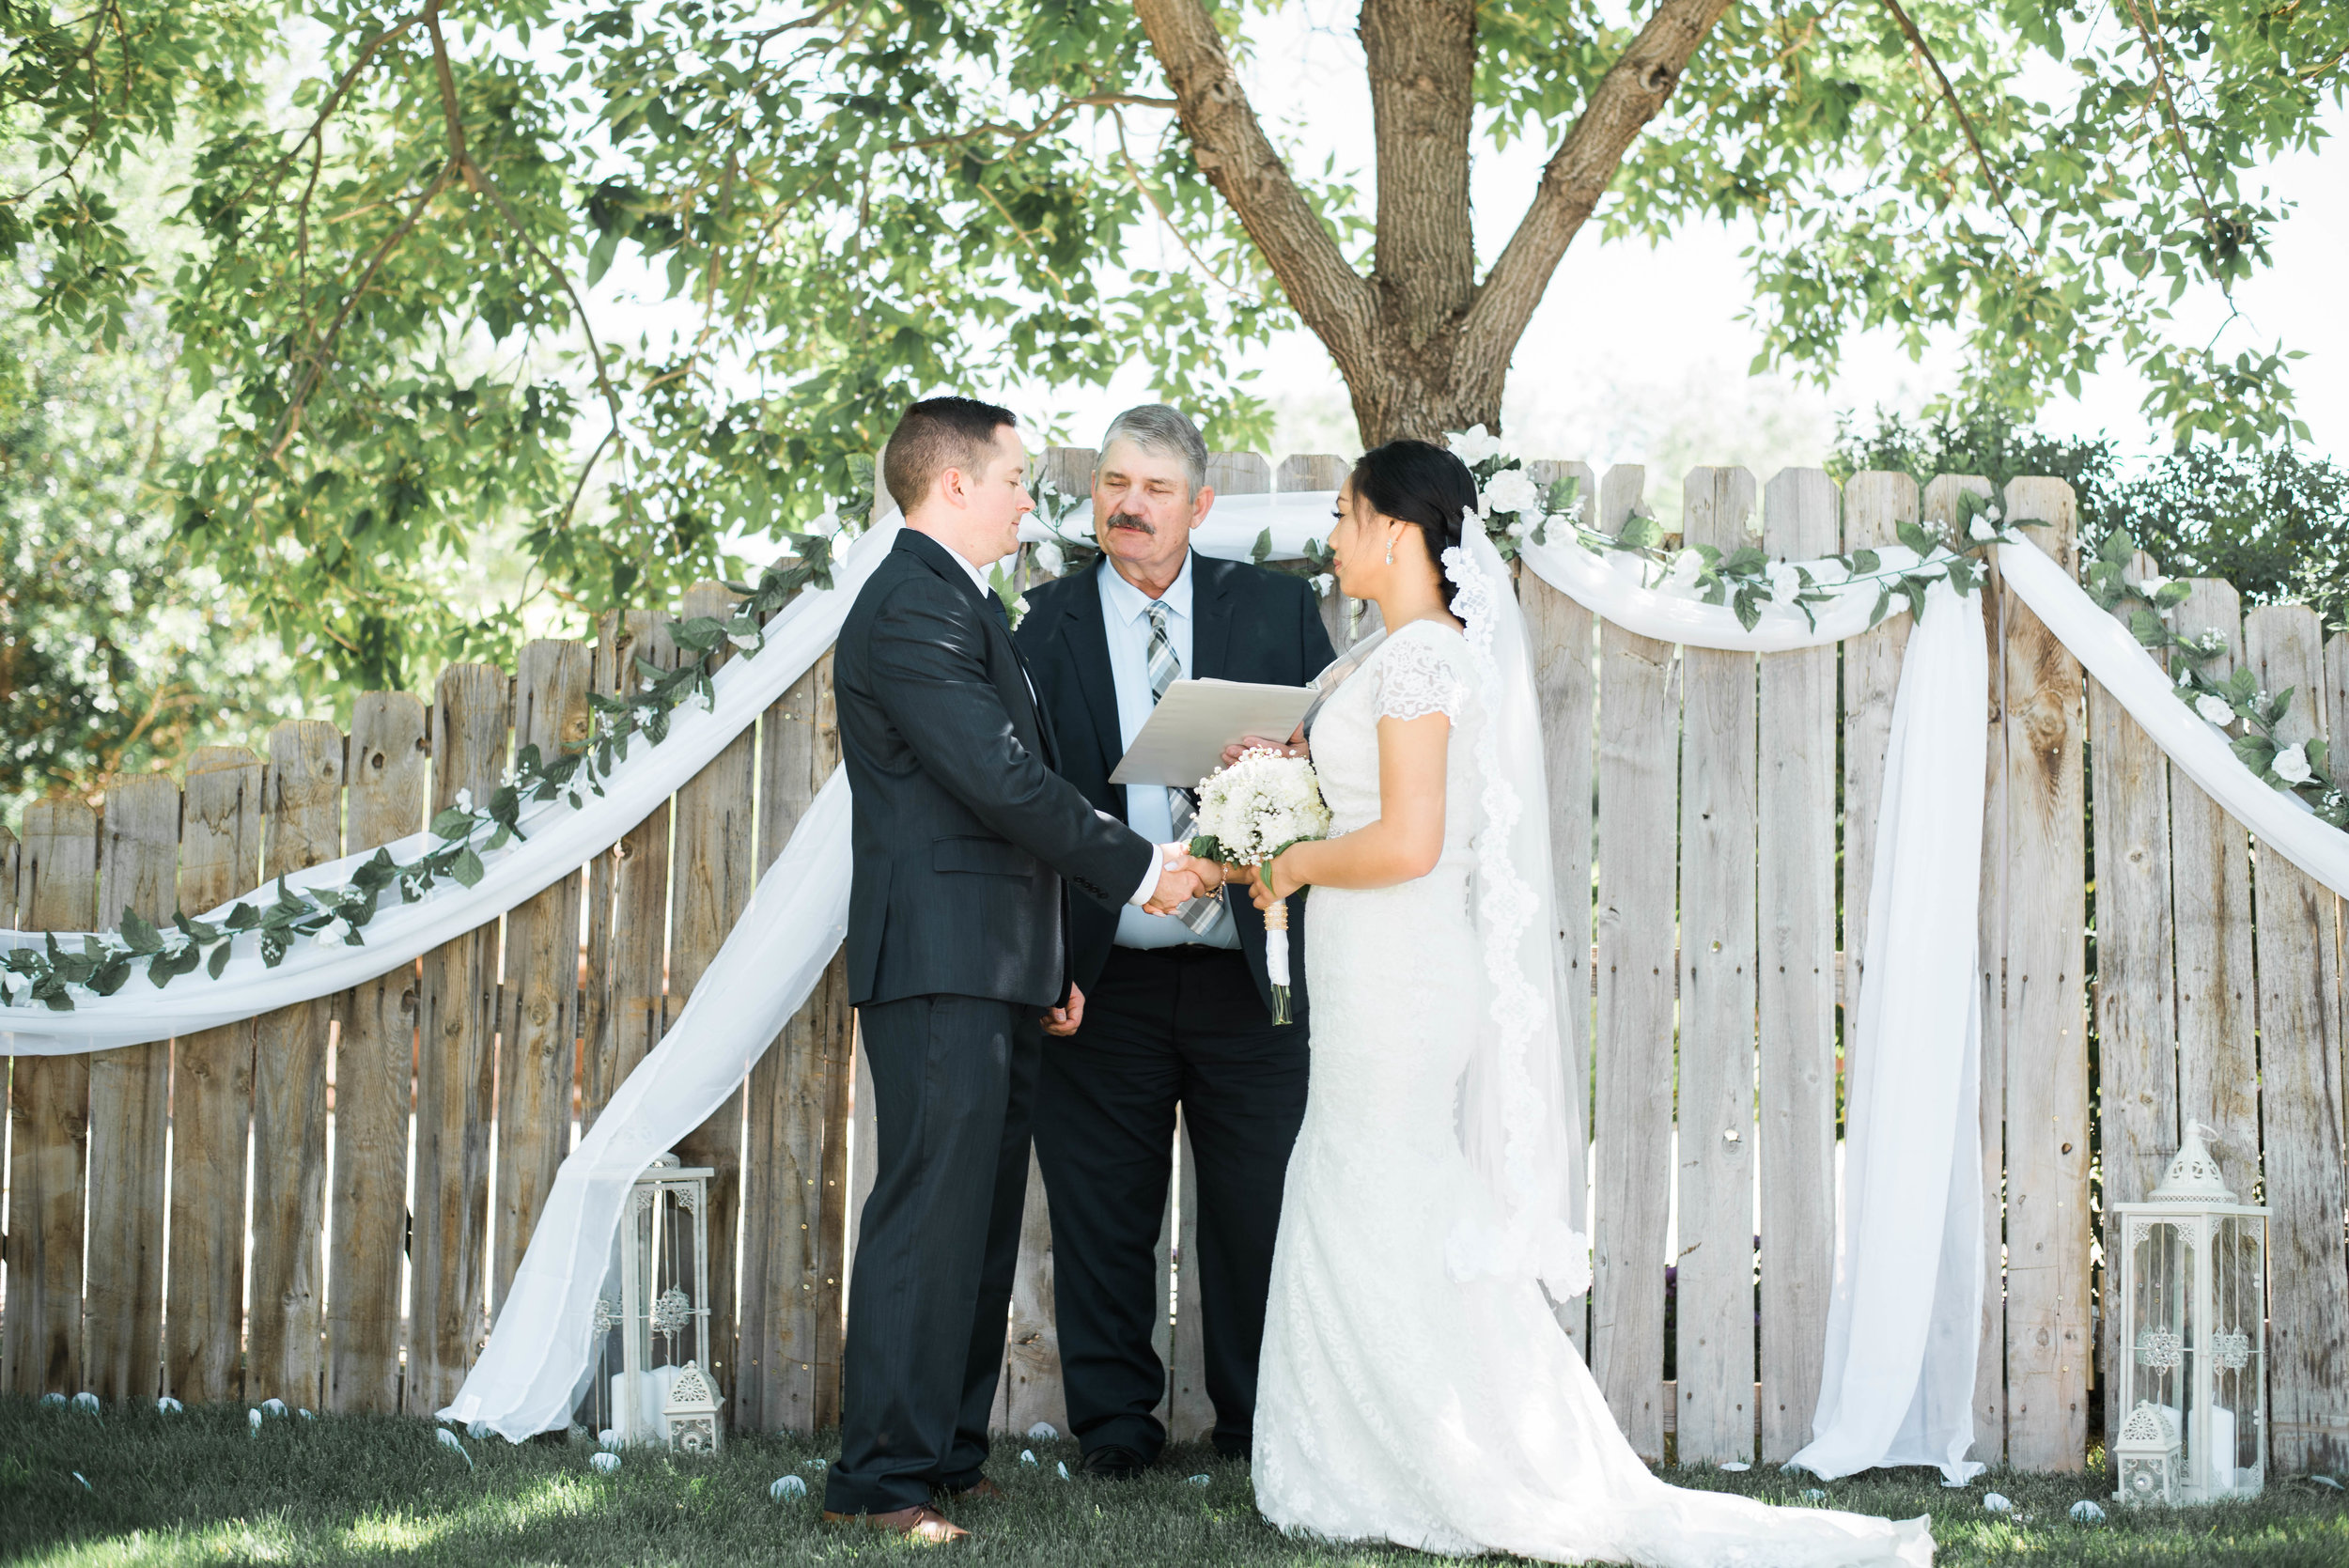 M+J-WEDDING-DAY-Sadie_Banks_Photography-158.jpg